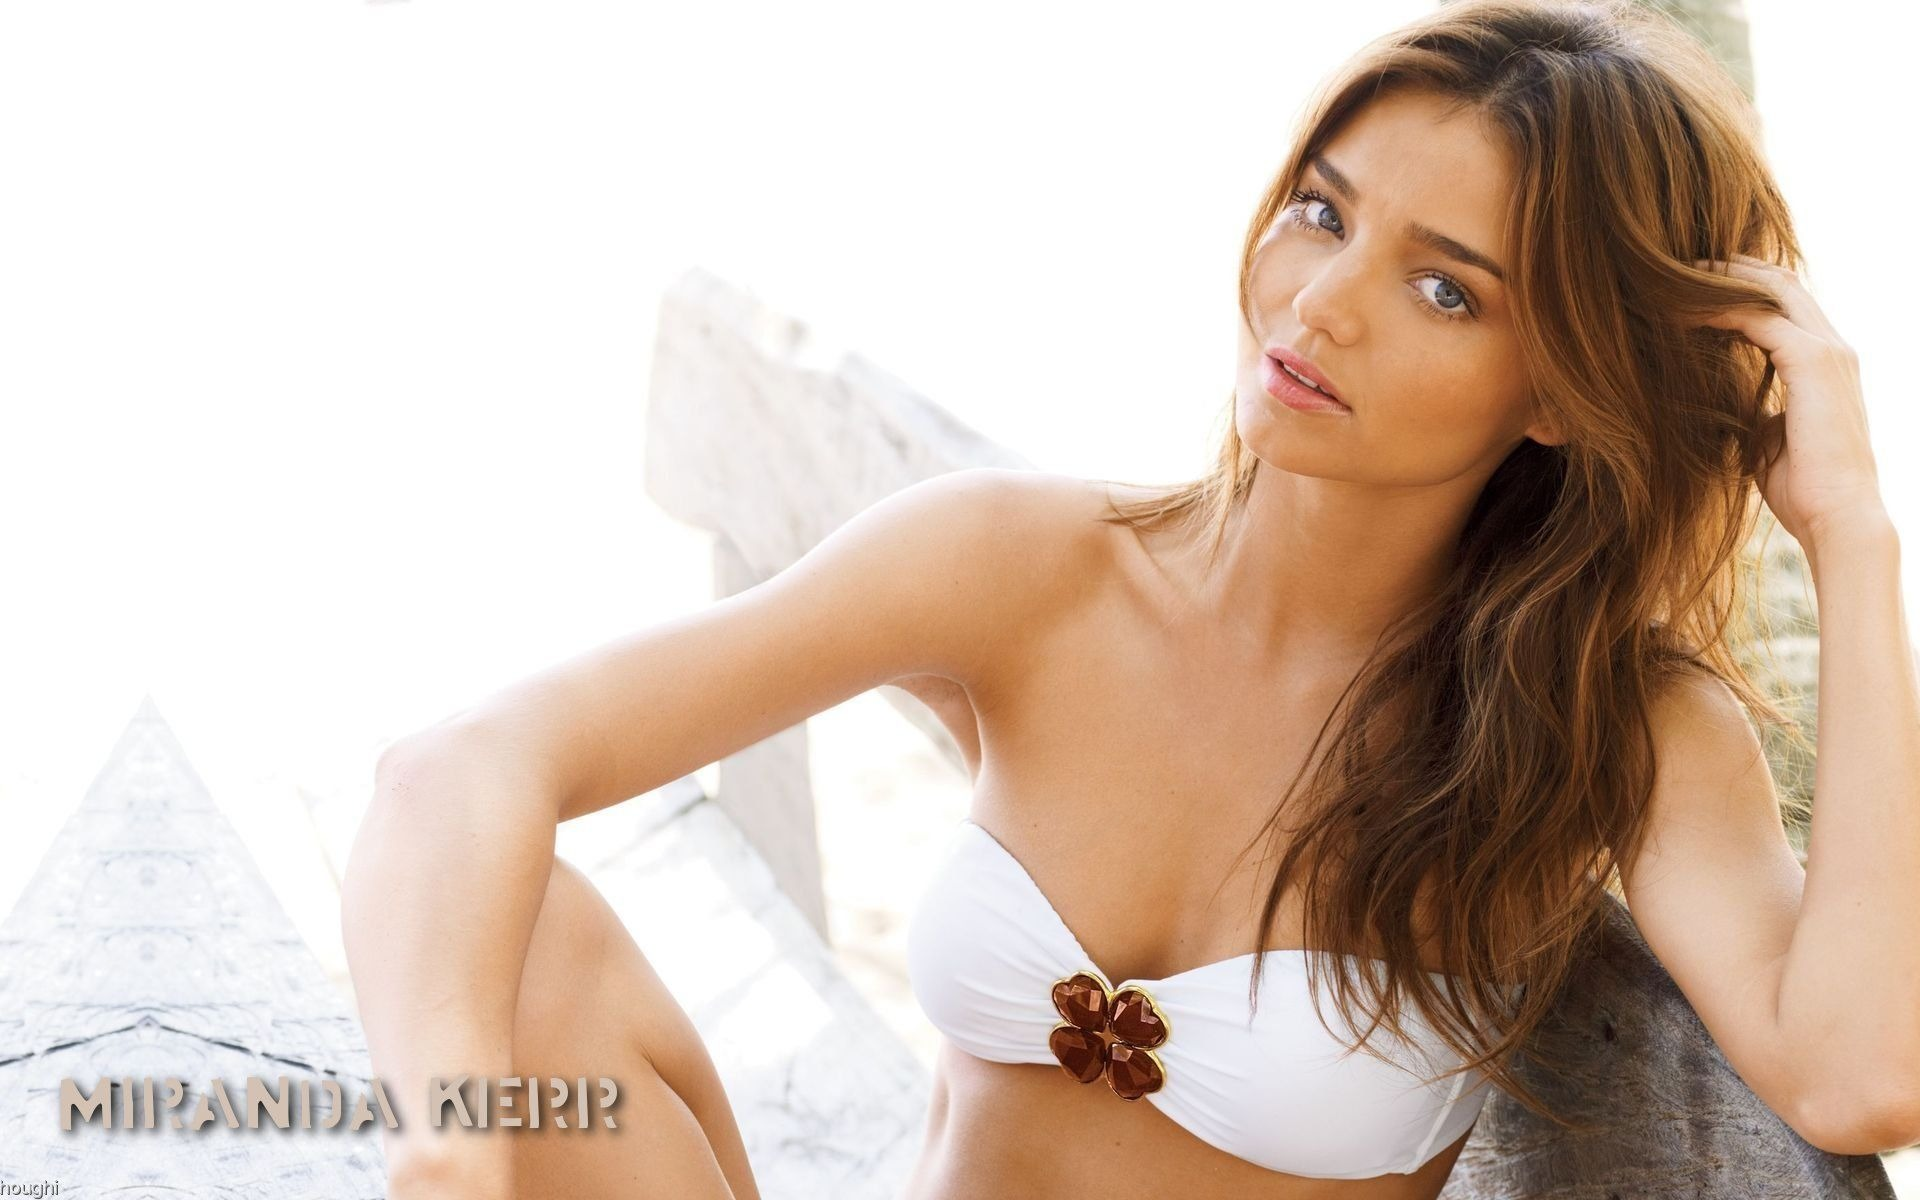 Miranda Kerr #026 - 1920x1200 Wallpapers Pictures Photos Images